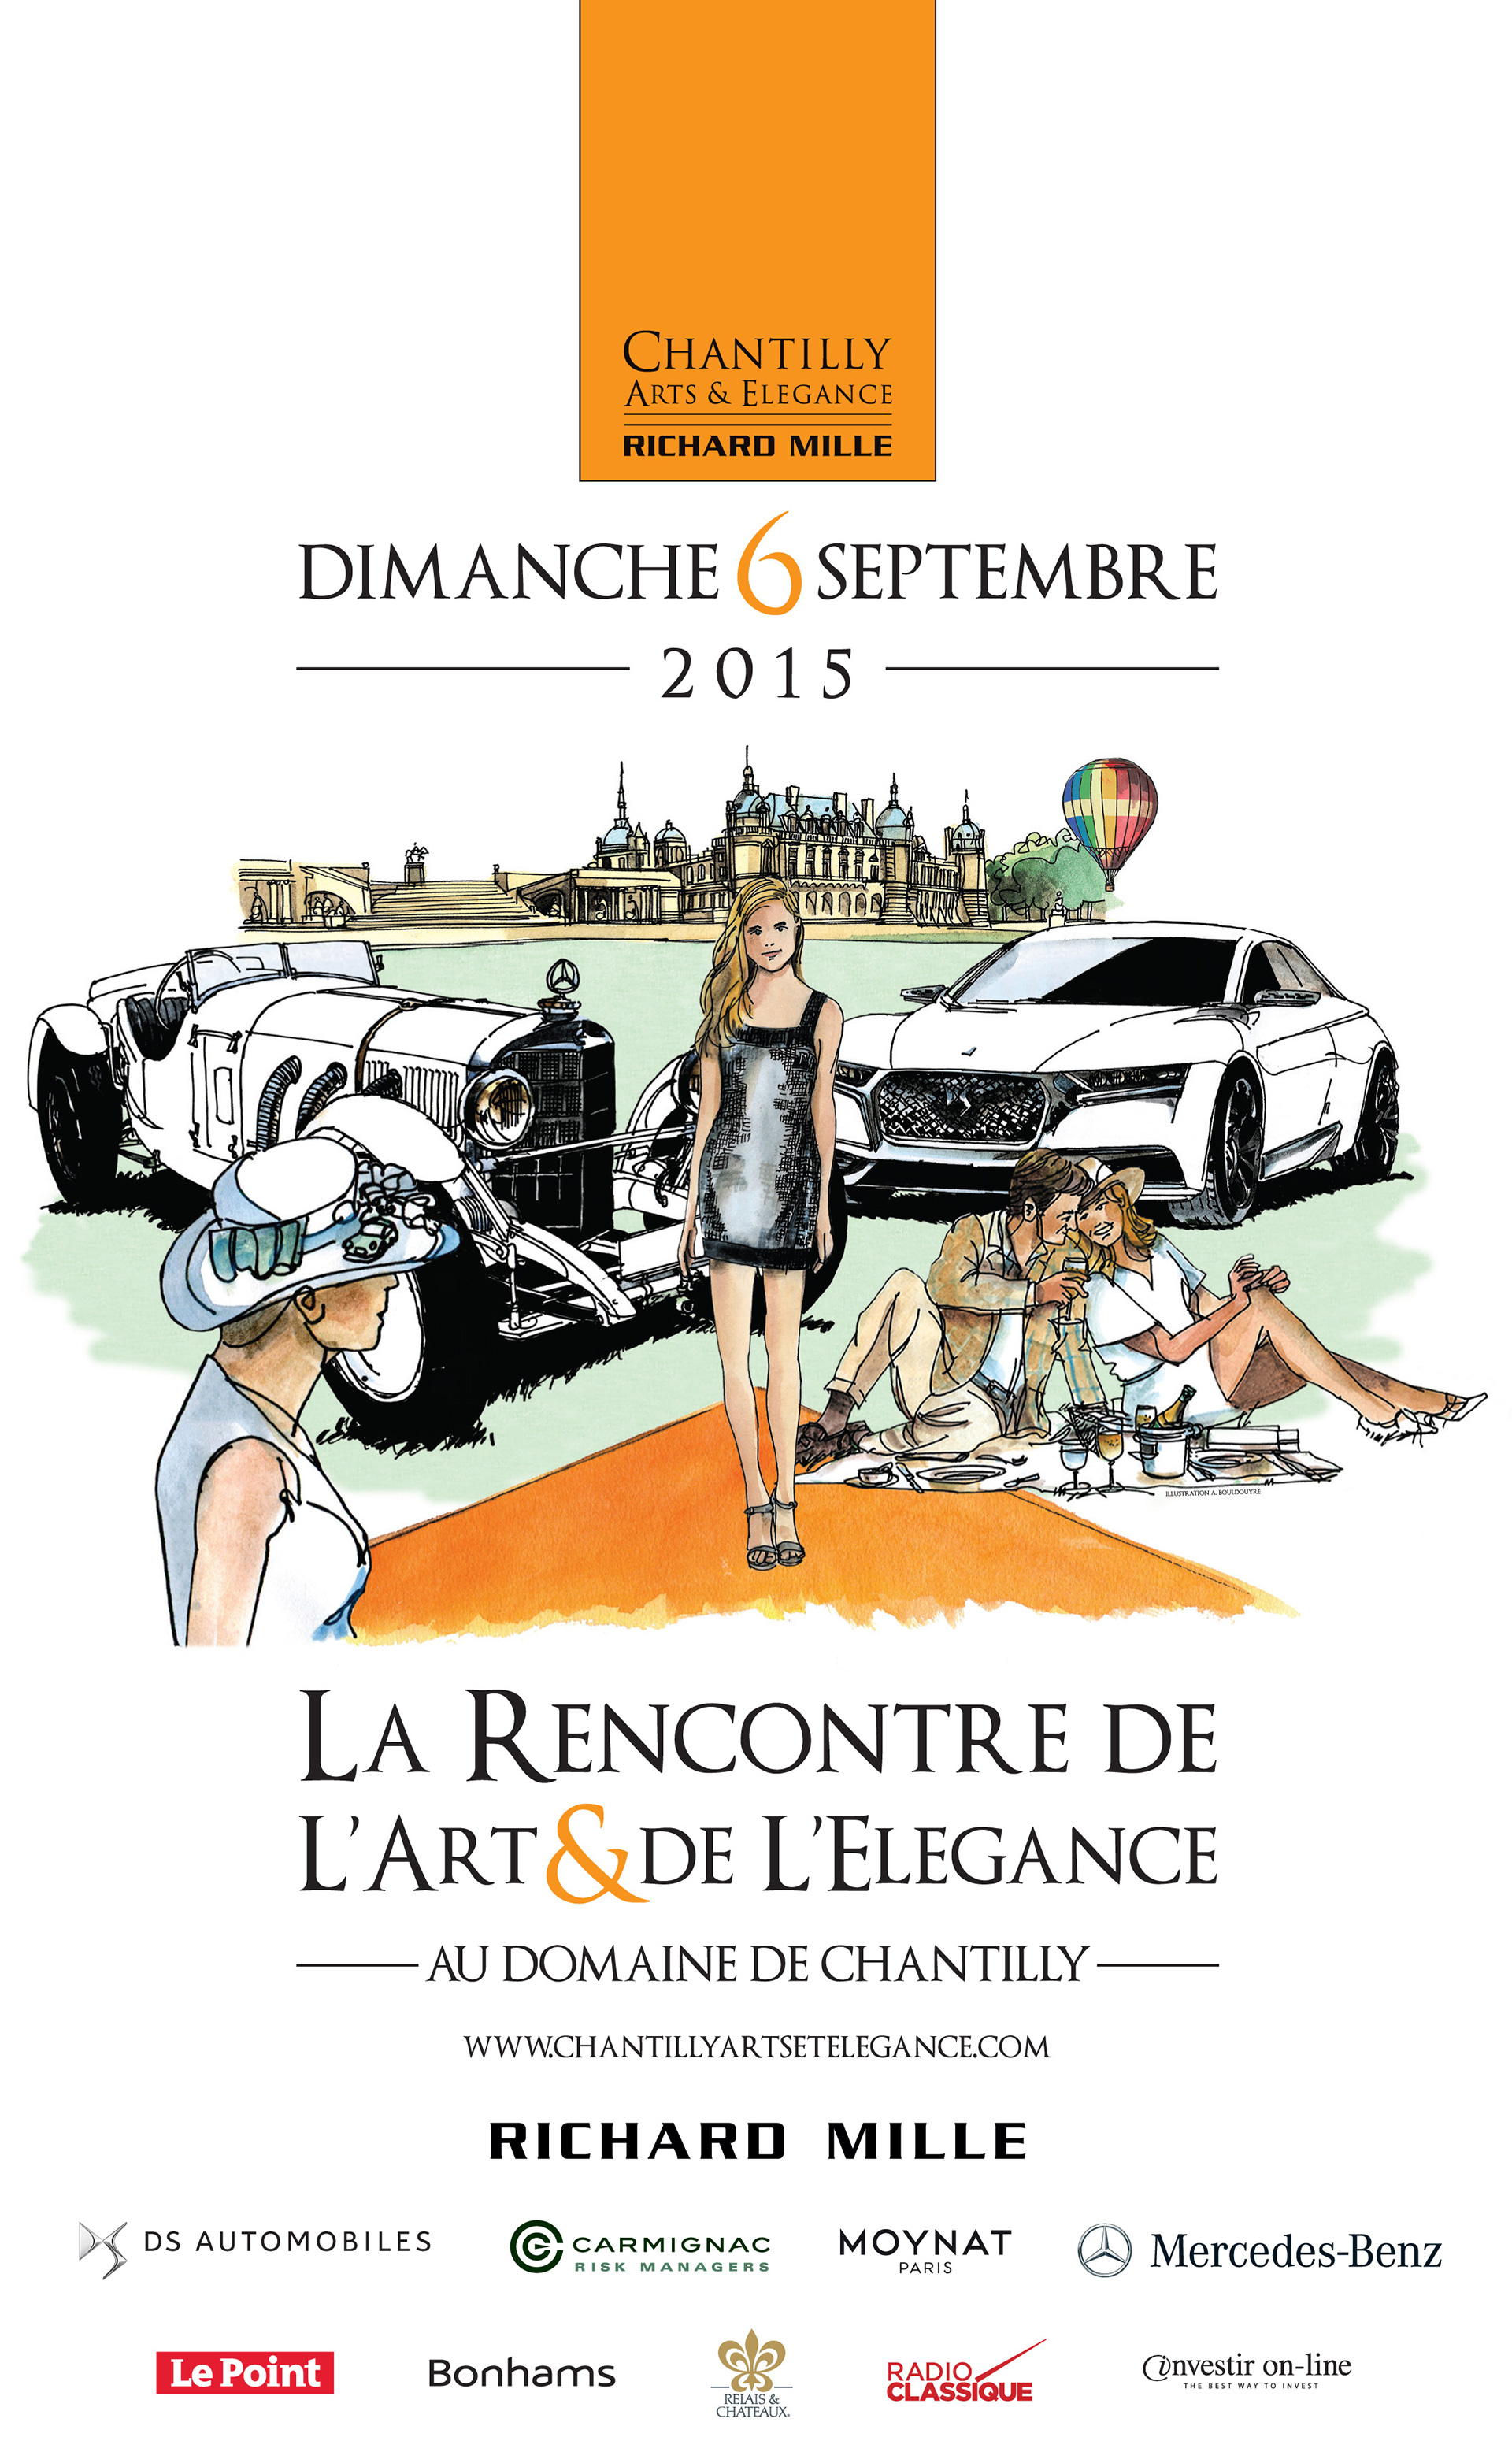 Chantilly Arts & Elegance 2015